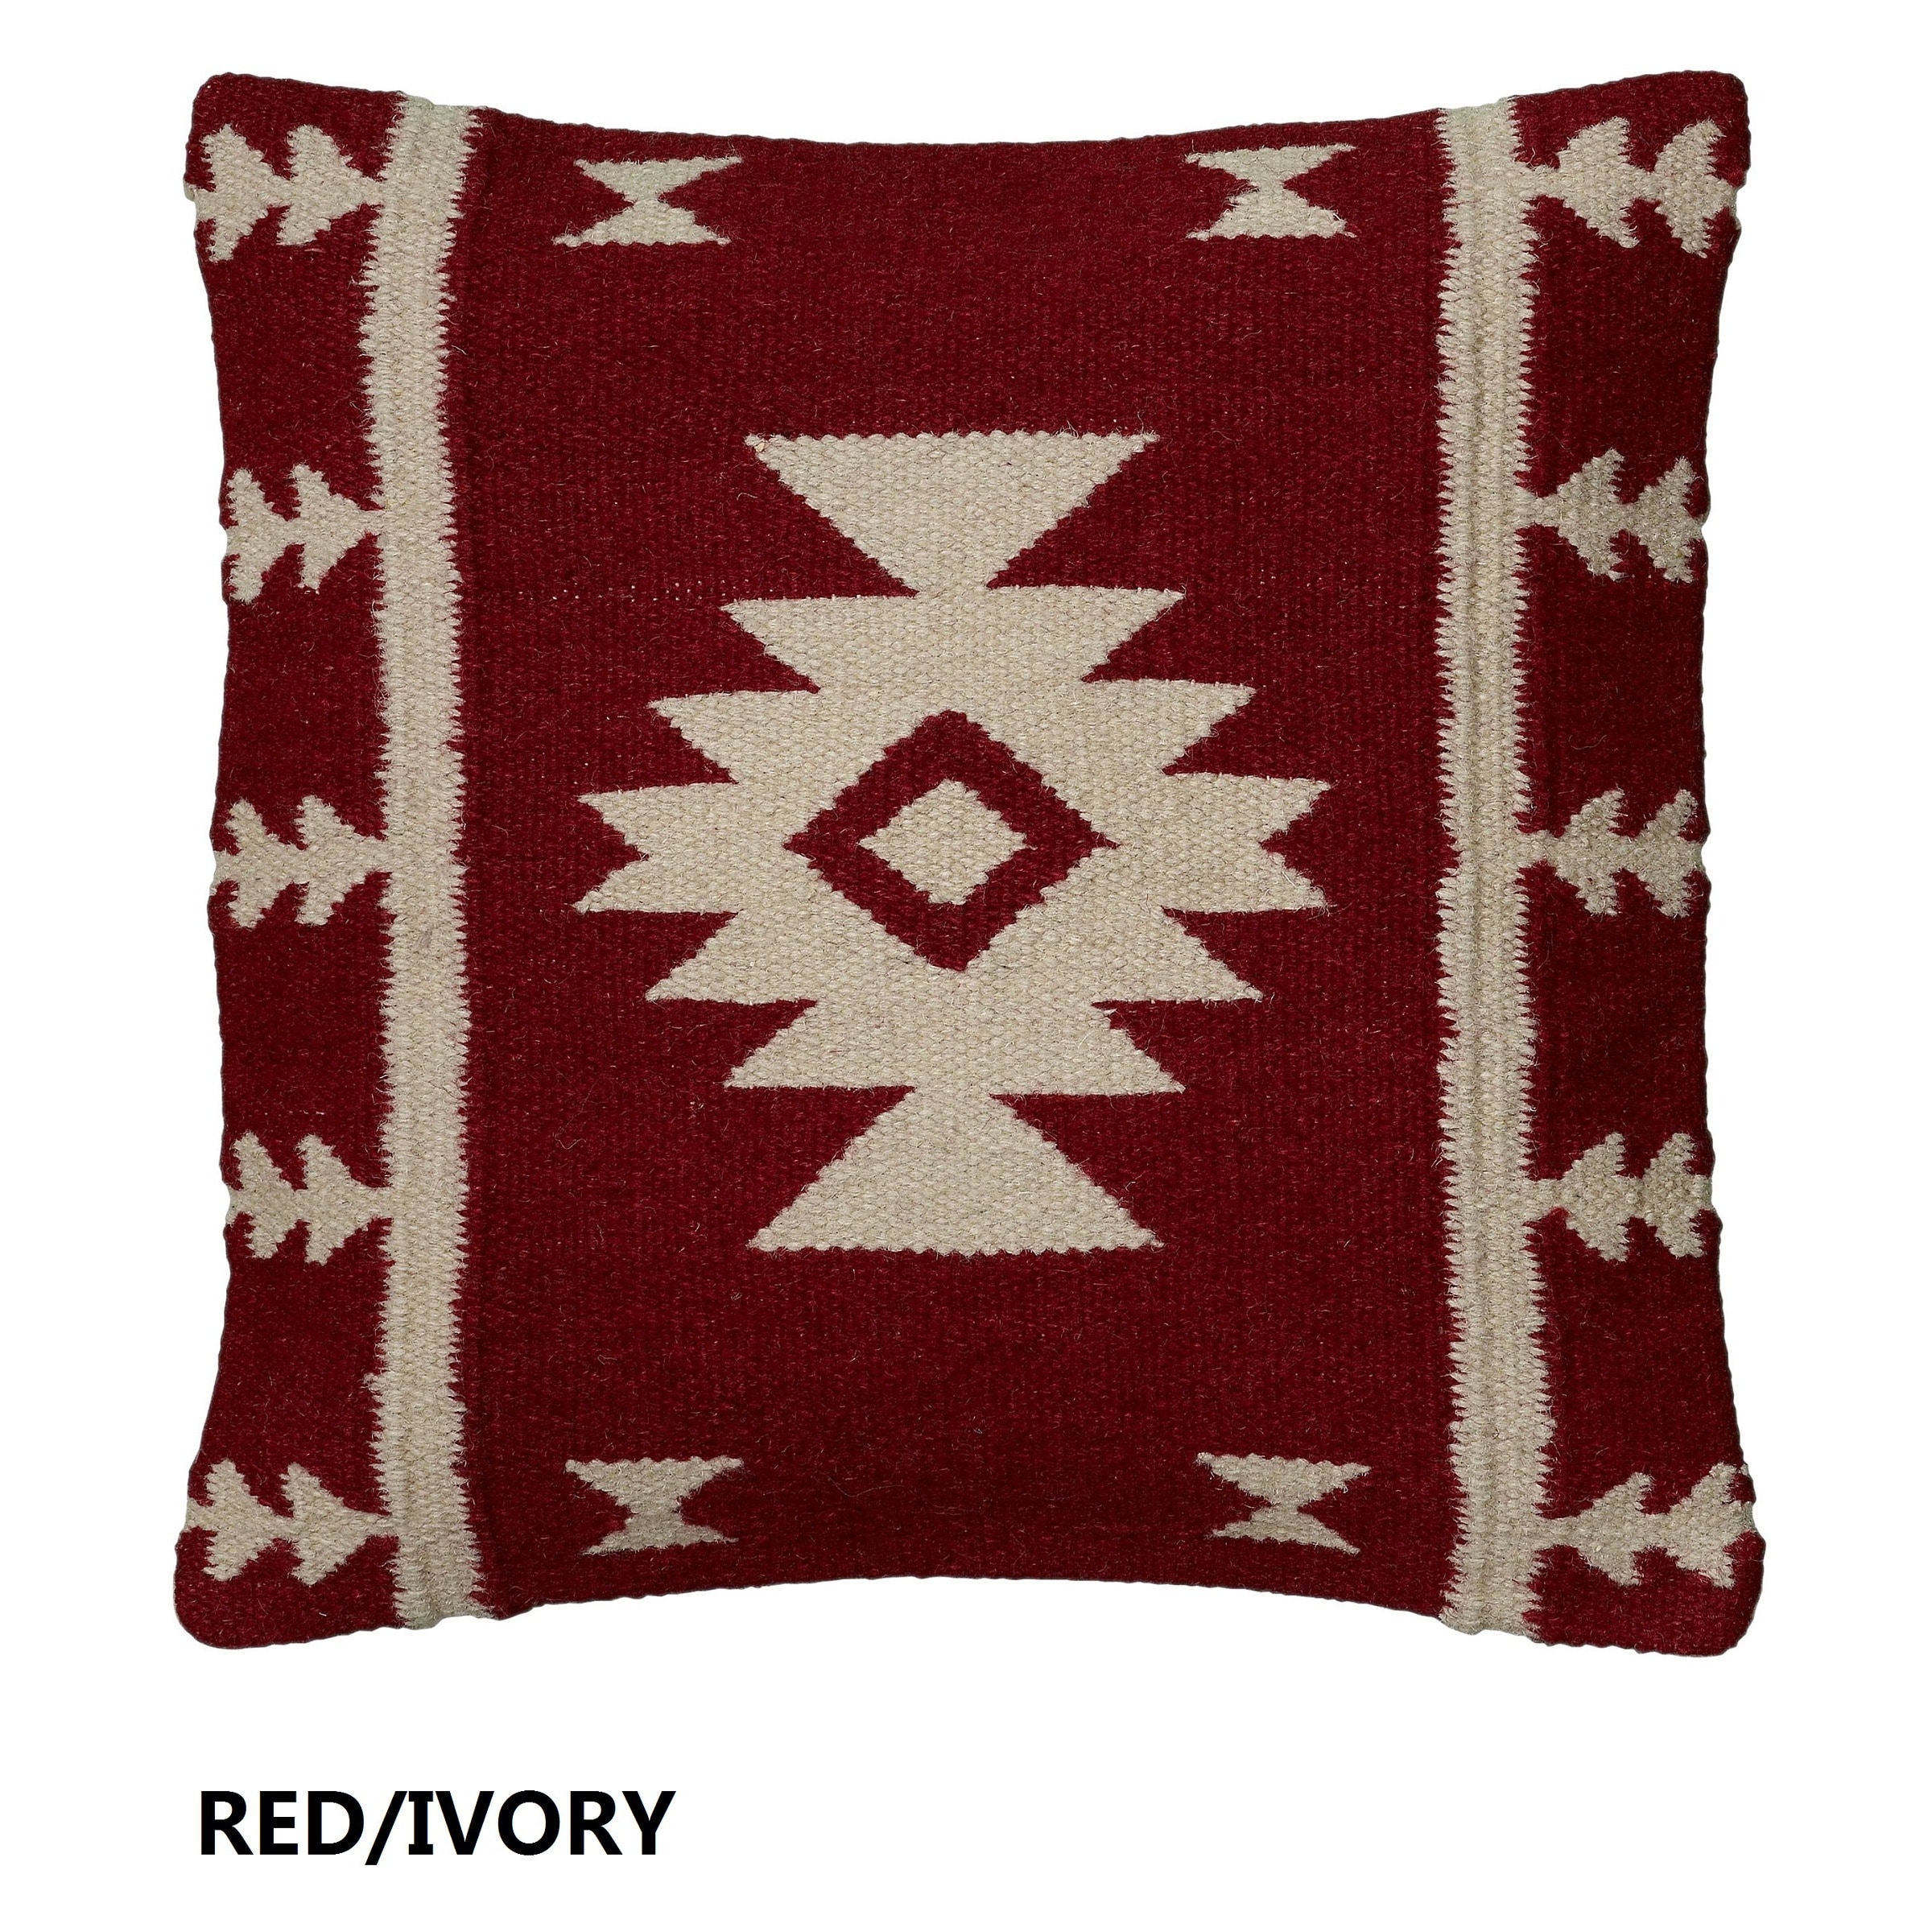 Rizzy Home Woven Southwest-patterned Decorative Throw Pillow eBay